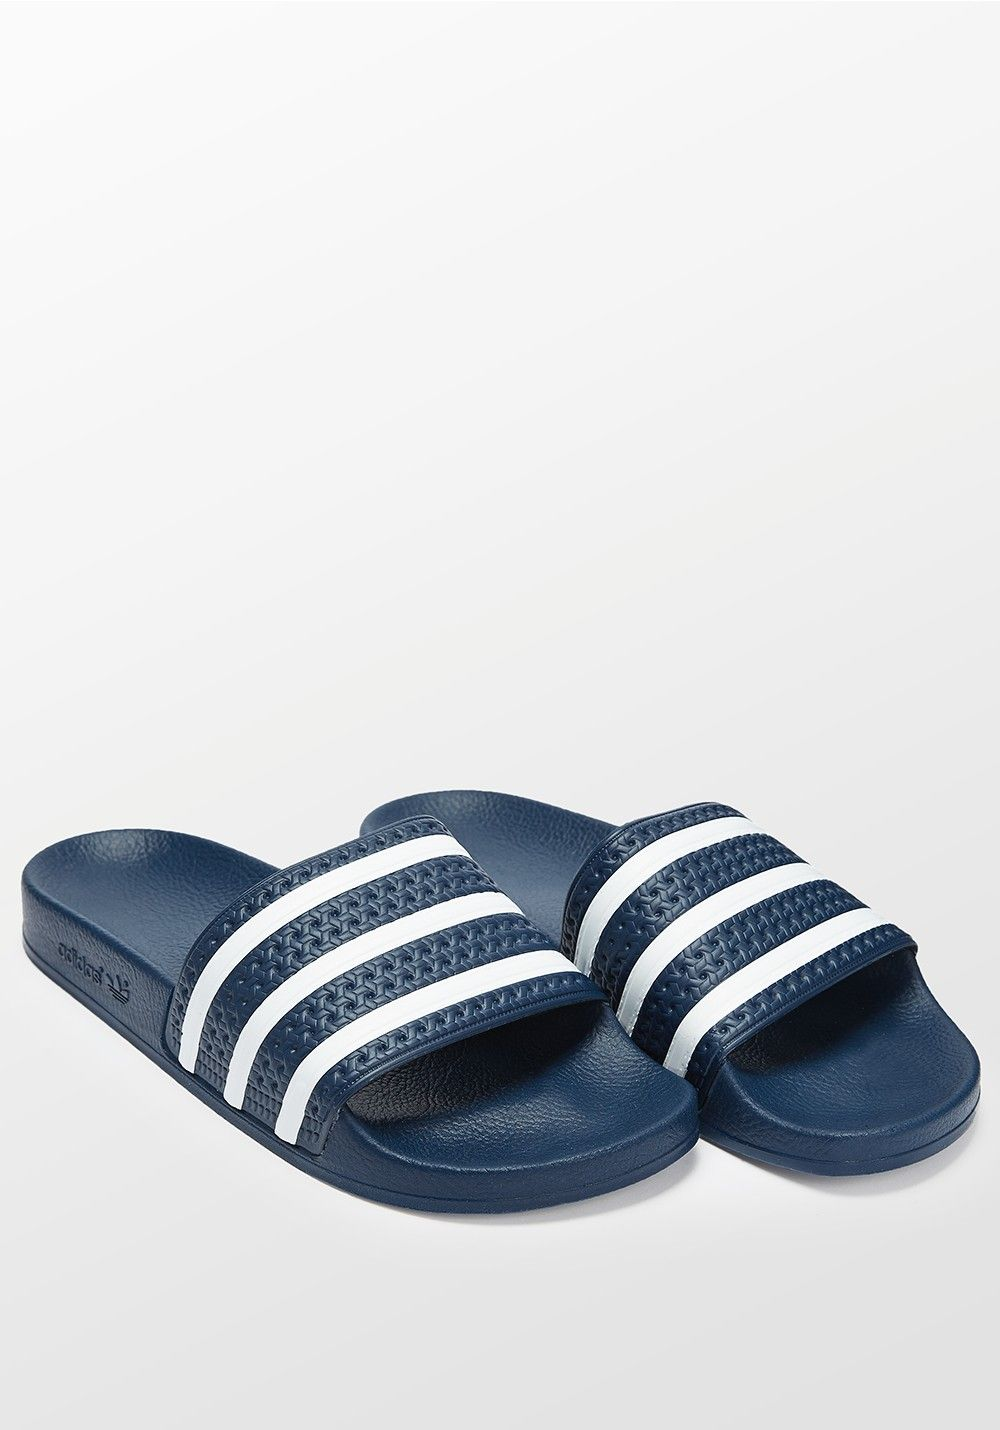 690fa3656 Adidas Adilette navy blue and white slides